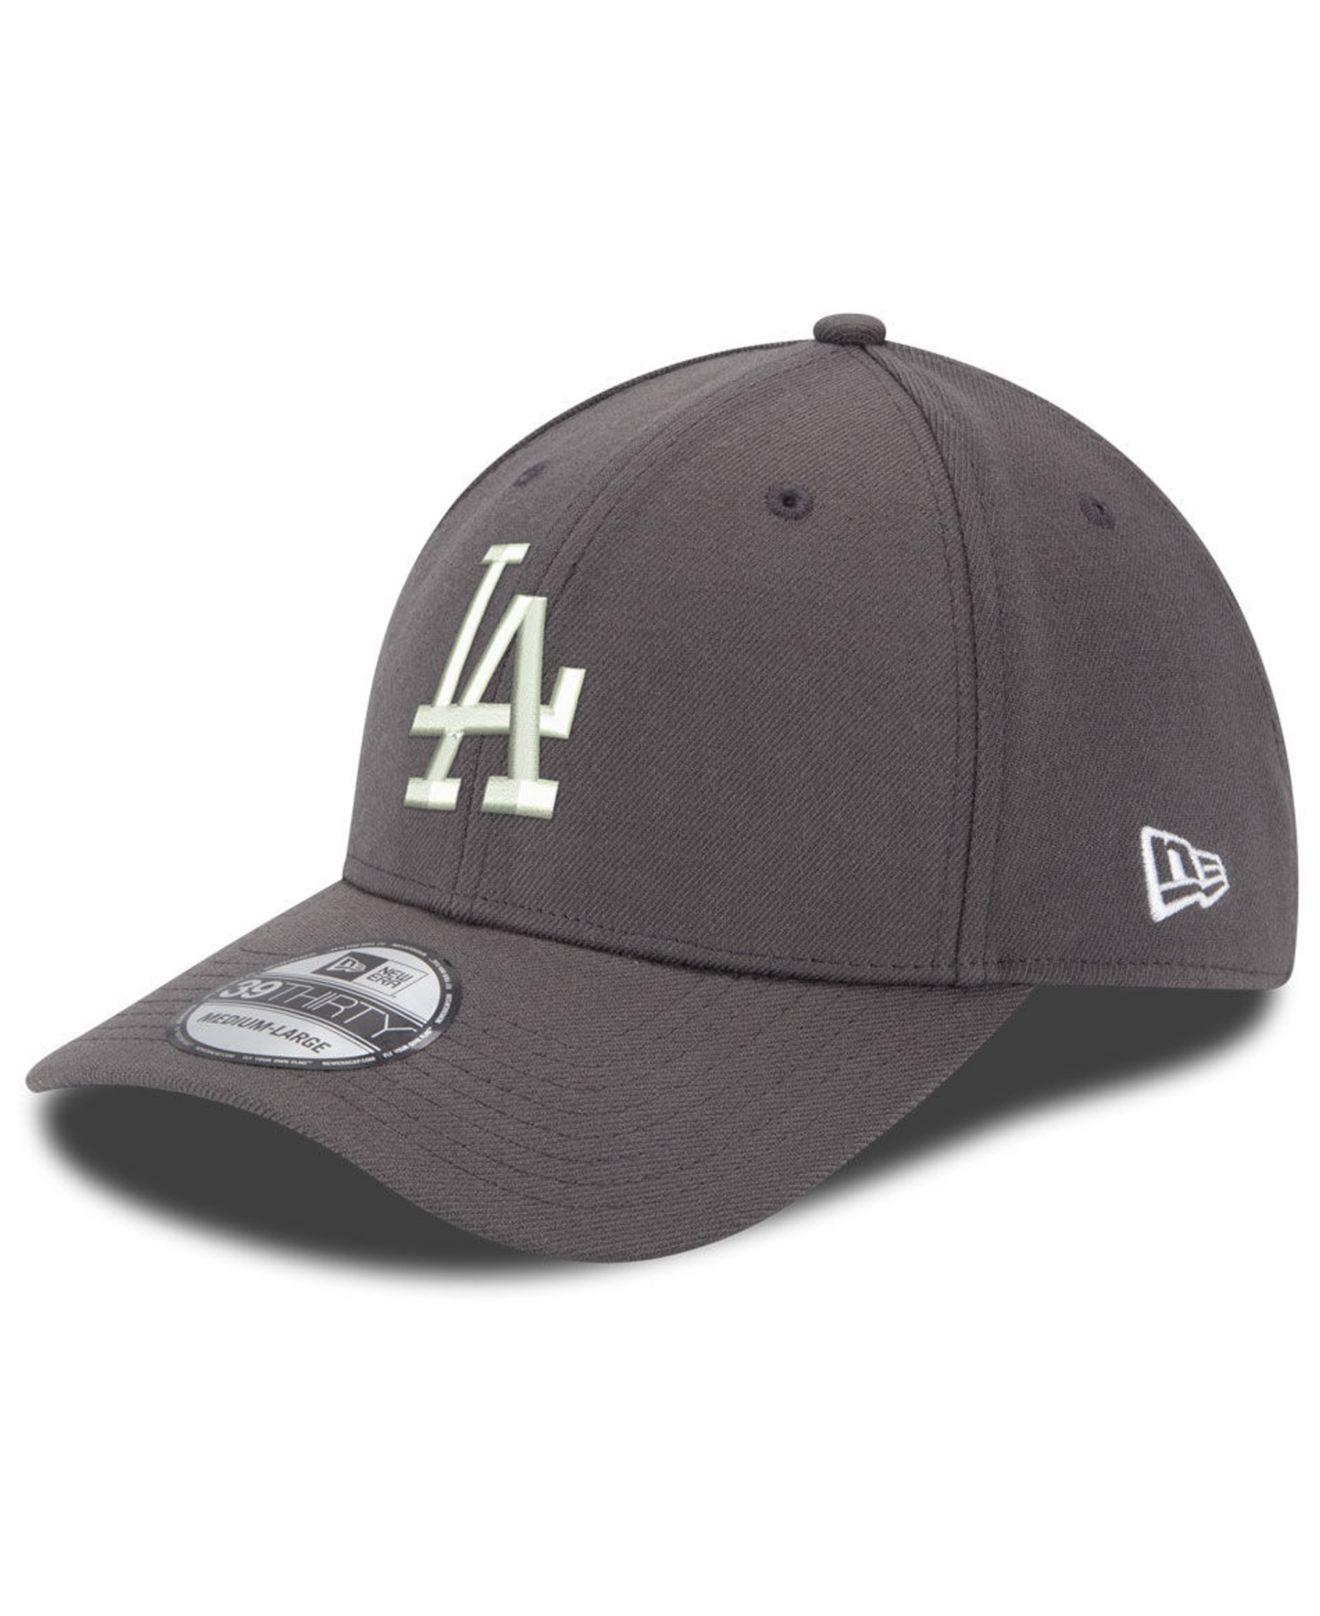 on sale abc30 7fc1c KTZ - Gray Los Angeles Dodgers Dub Classic 39thirty Stretch Fitted Cap for  Men - Lyst. View fullscreen